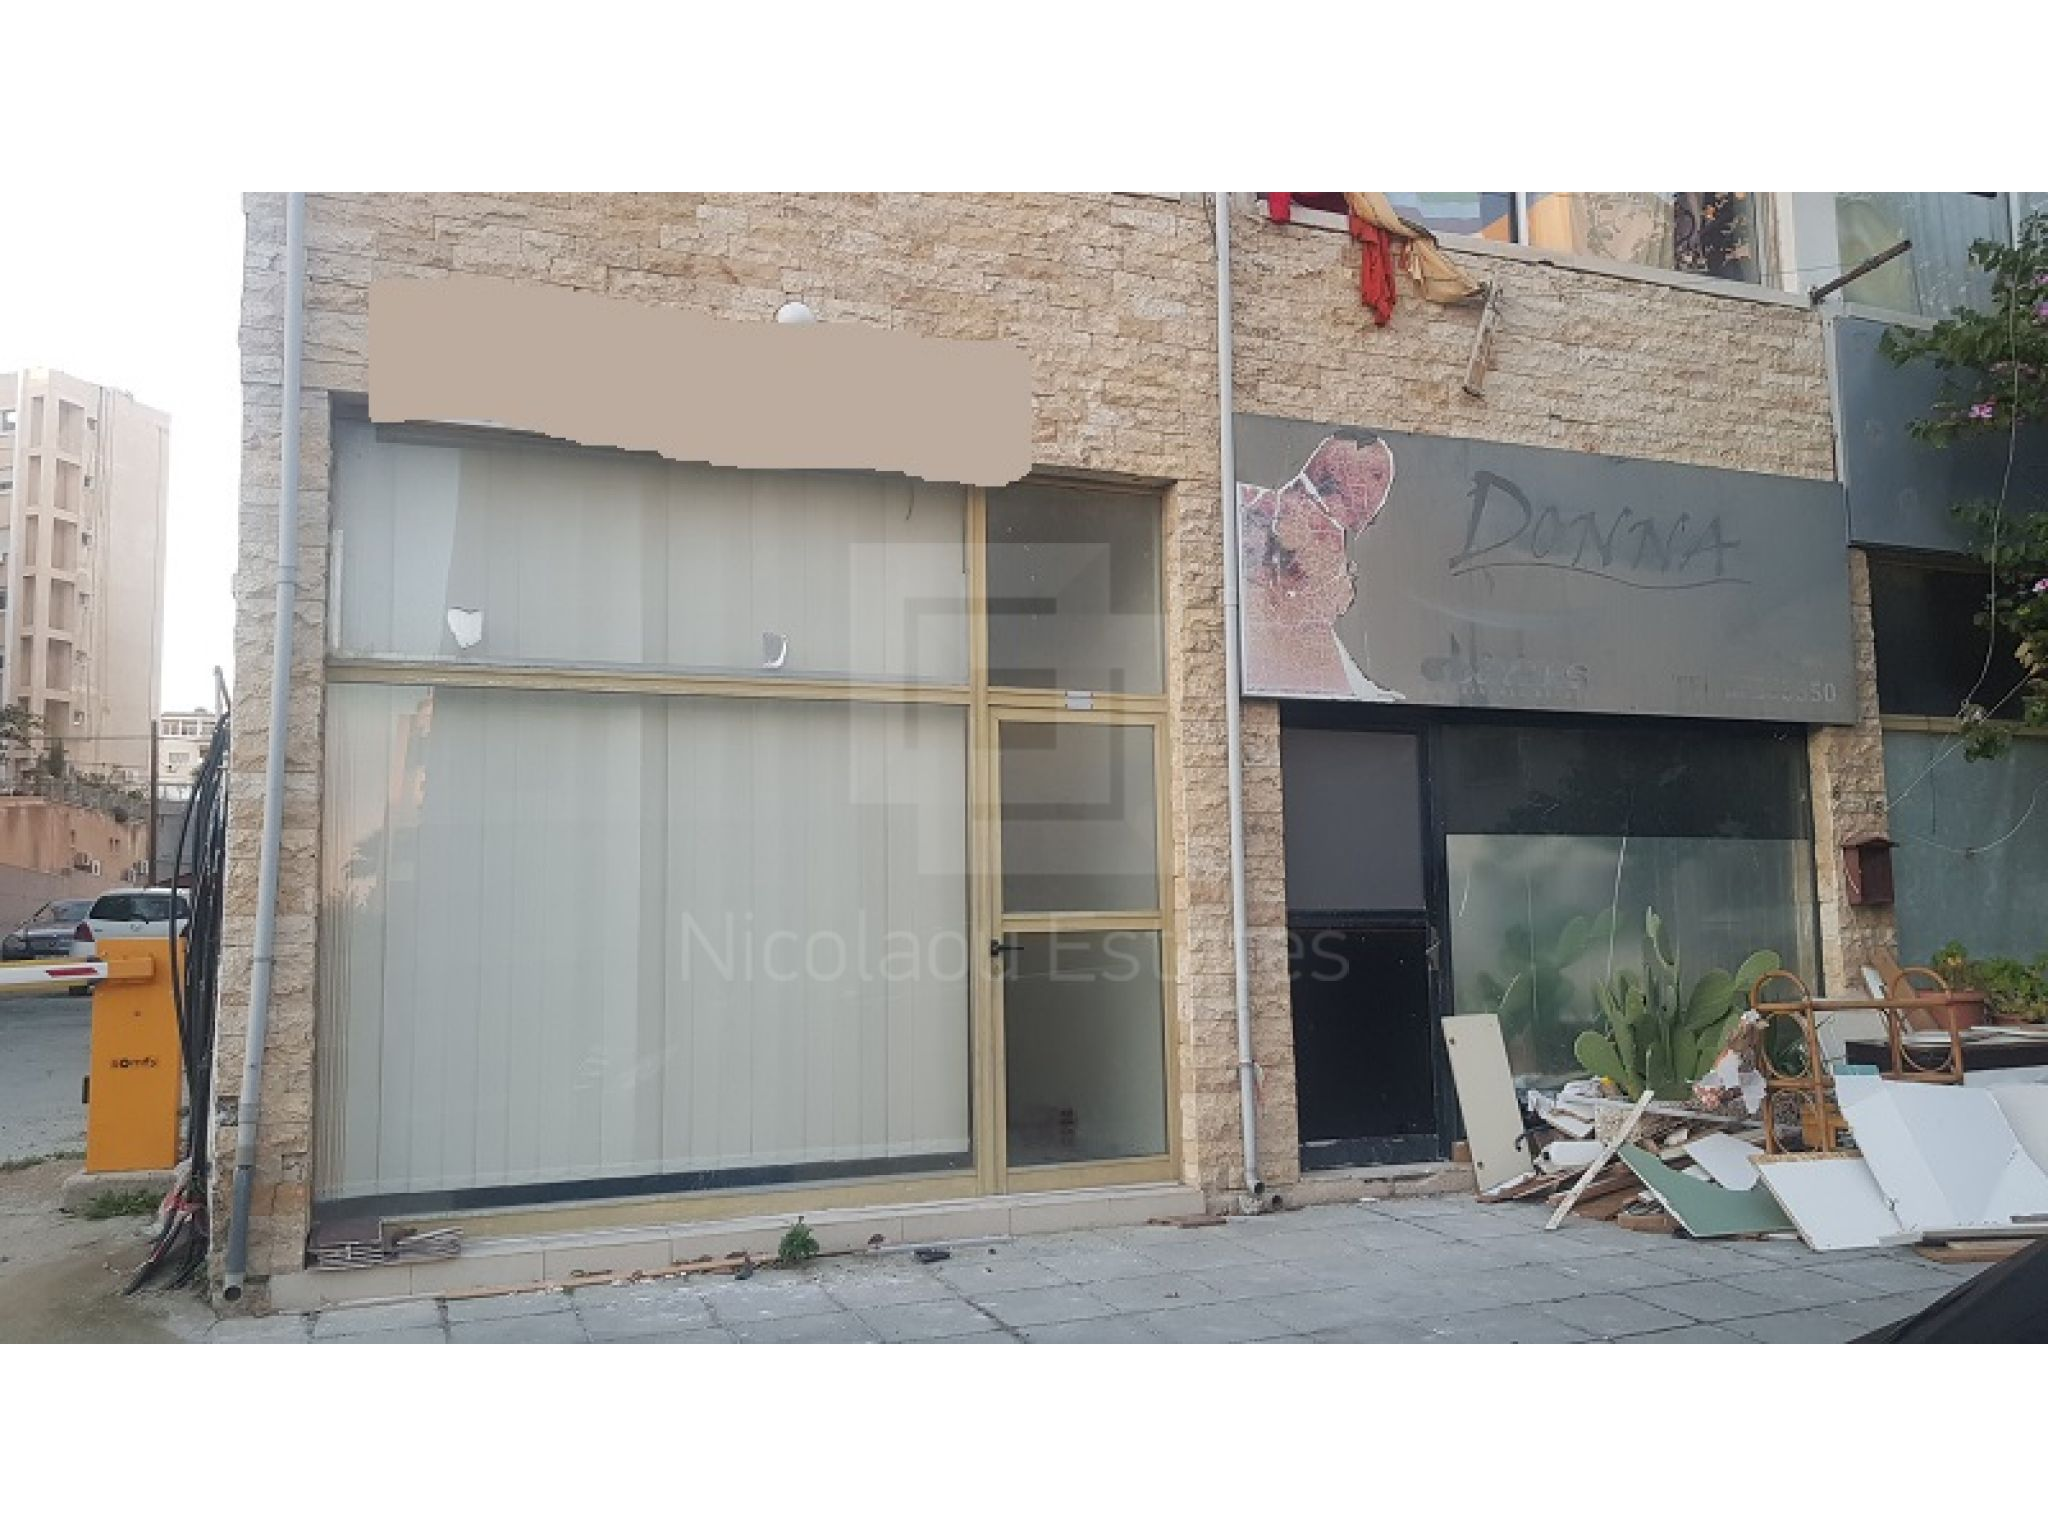 Office for sale in Limassol town center, steps away from Makariou Ave